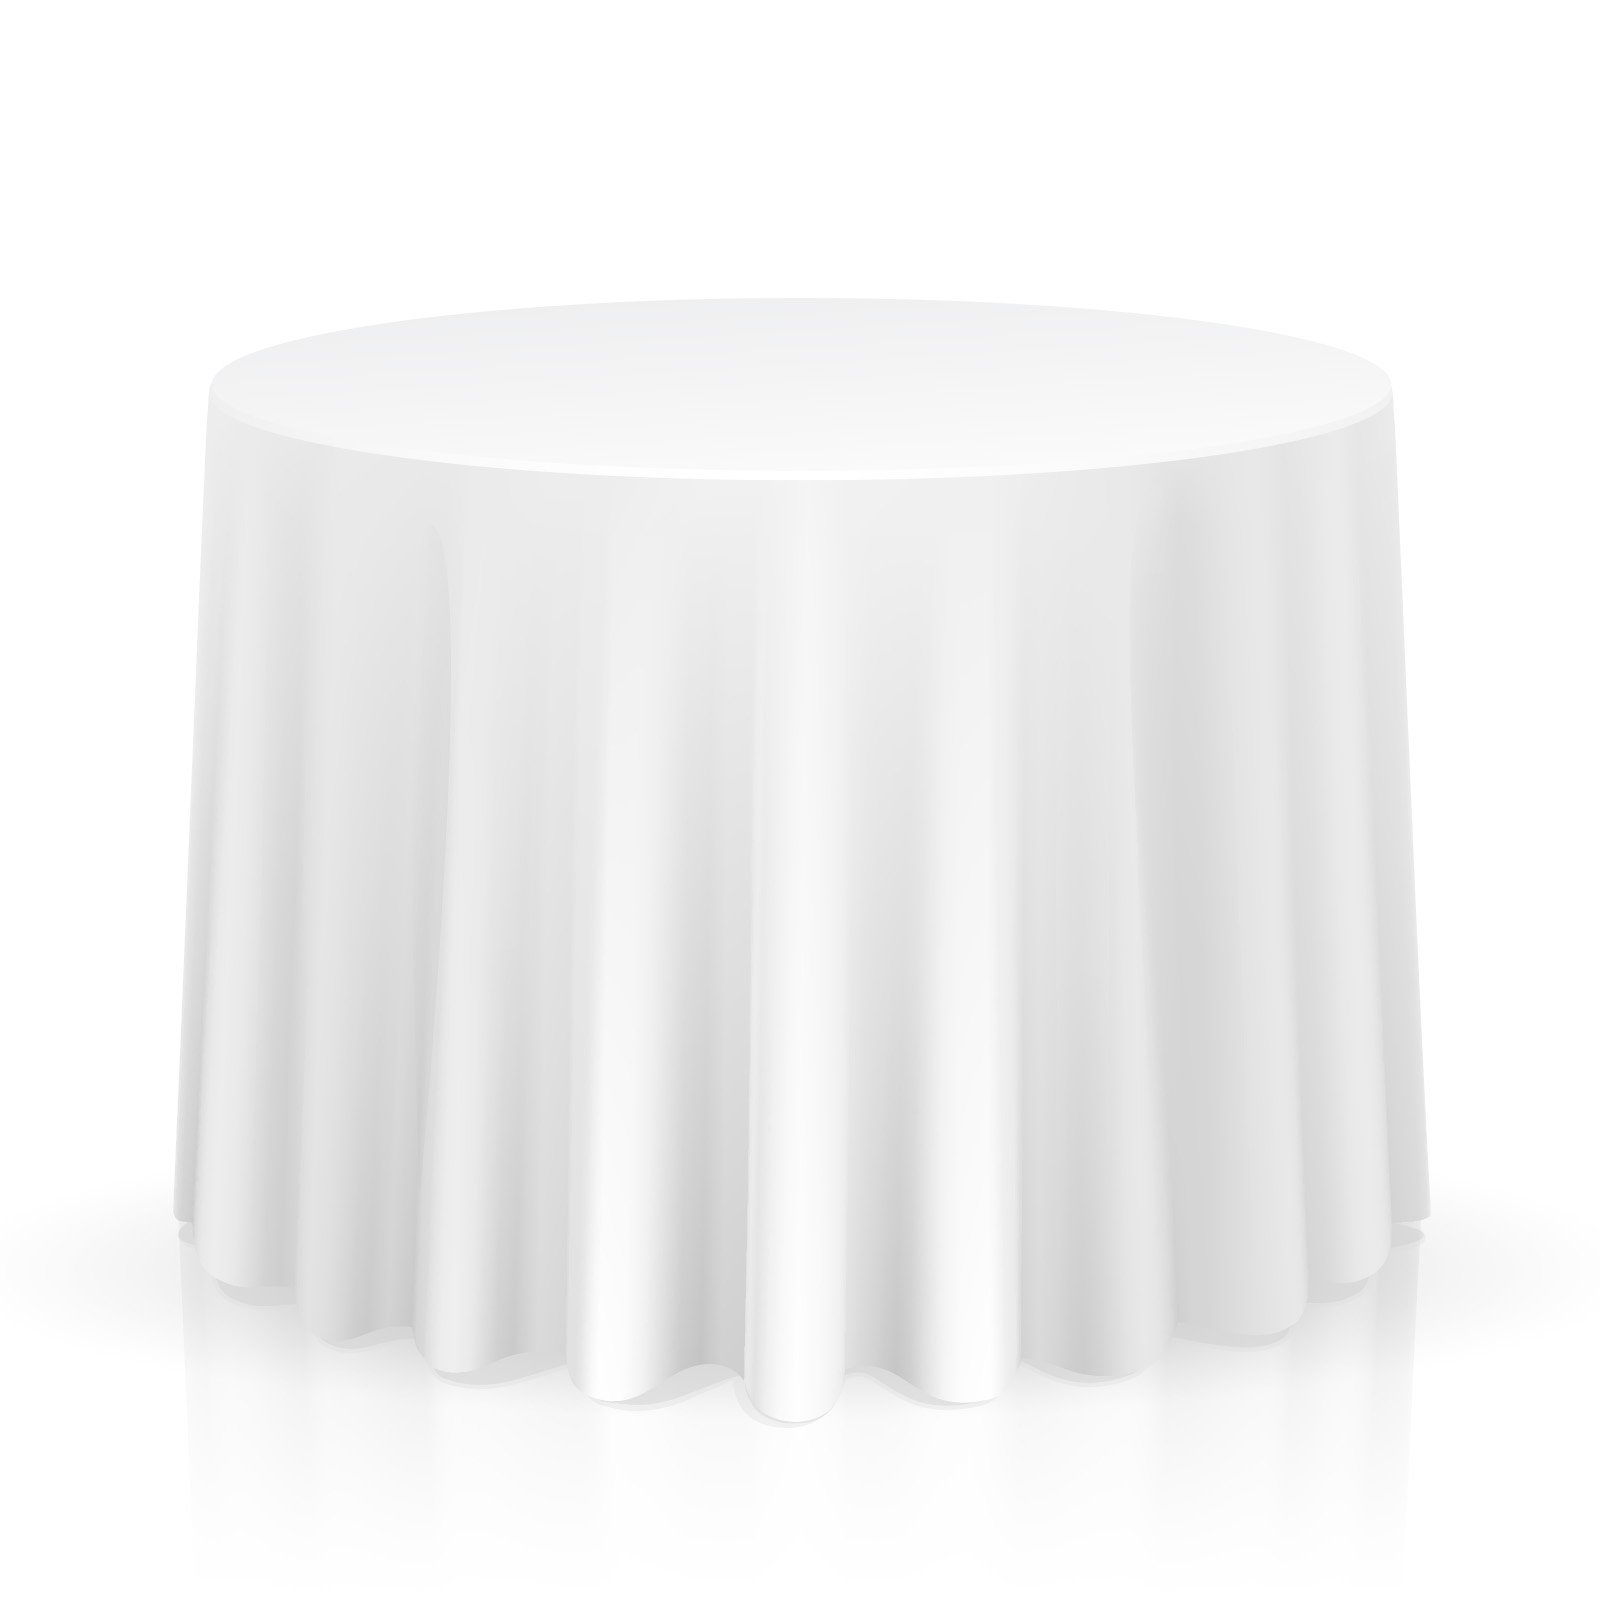 Lann's Linens - 5 Premium 120'' Round Tablecloths for Wedding/Banquet/Restaurant - Polyester Fabric Table Cloths - White